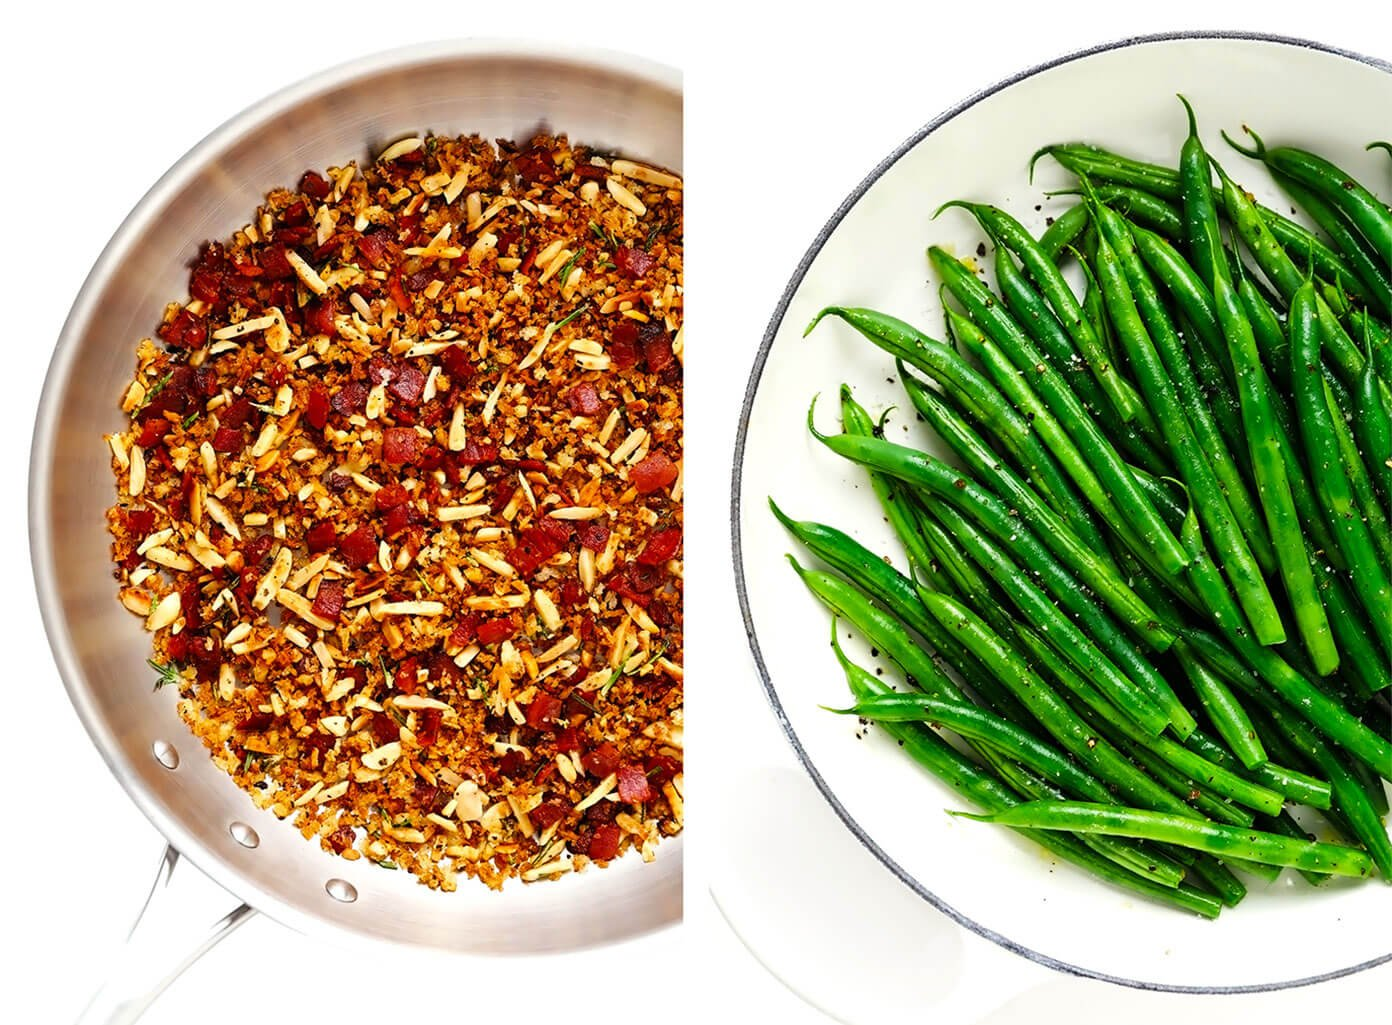 Bacon Breadcrumbs in Saute Pan plus Steamed Green Beans